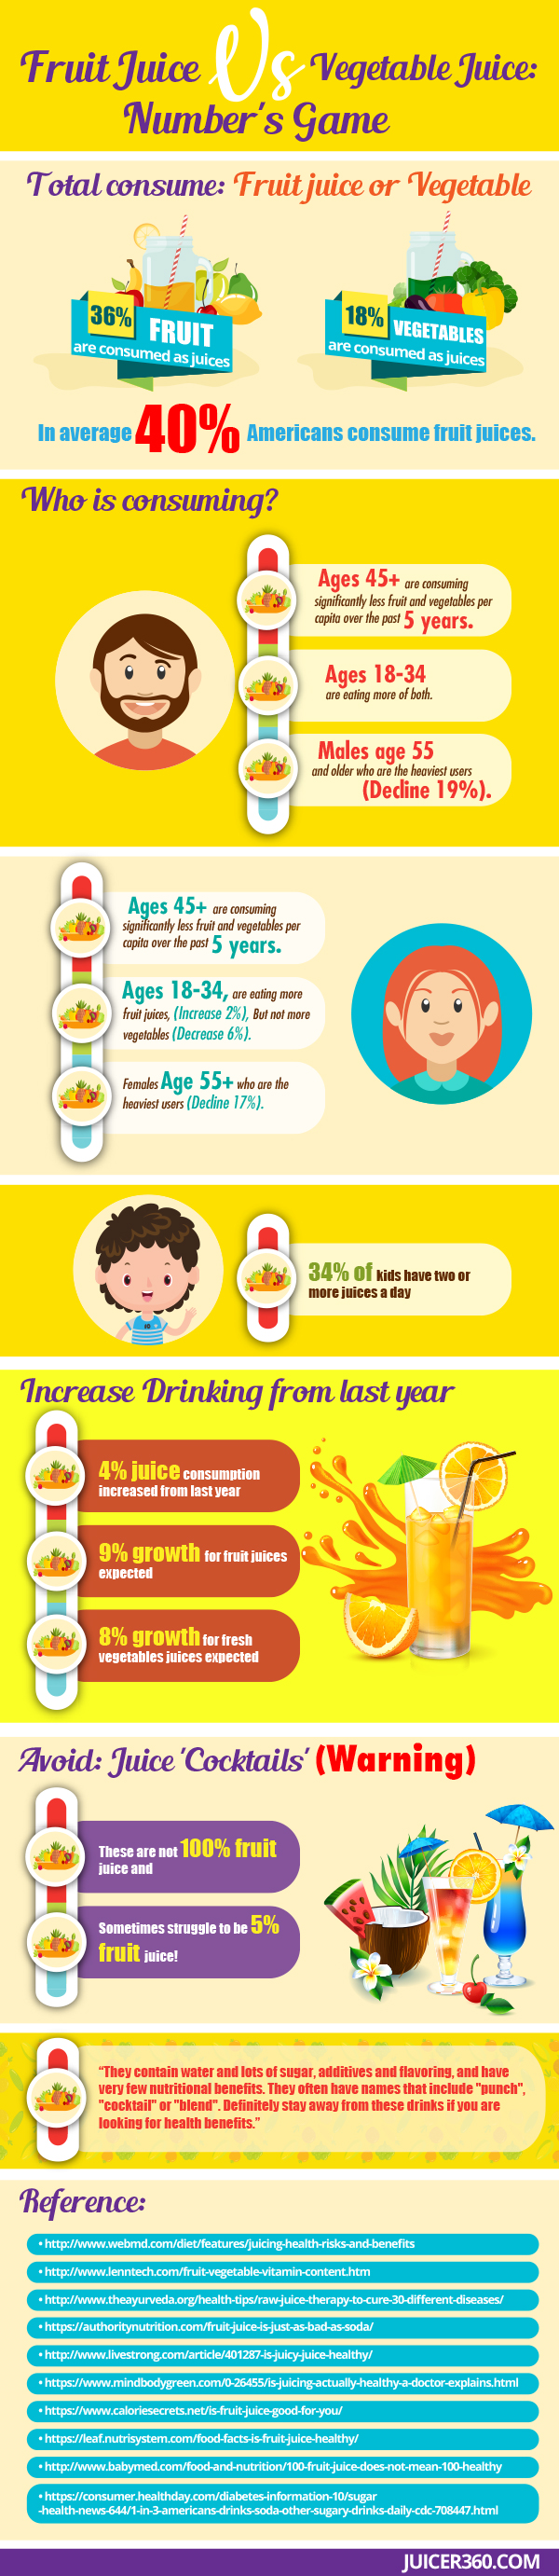 fruit-vs-vegetable-juice-infographic